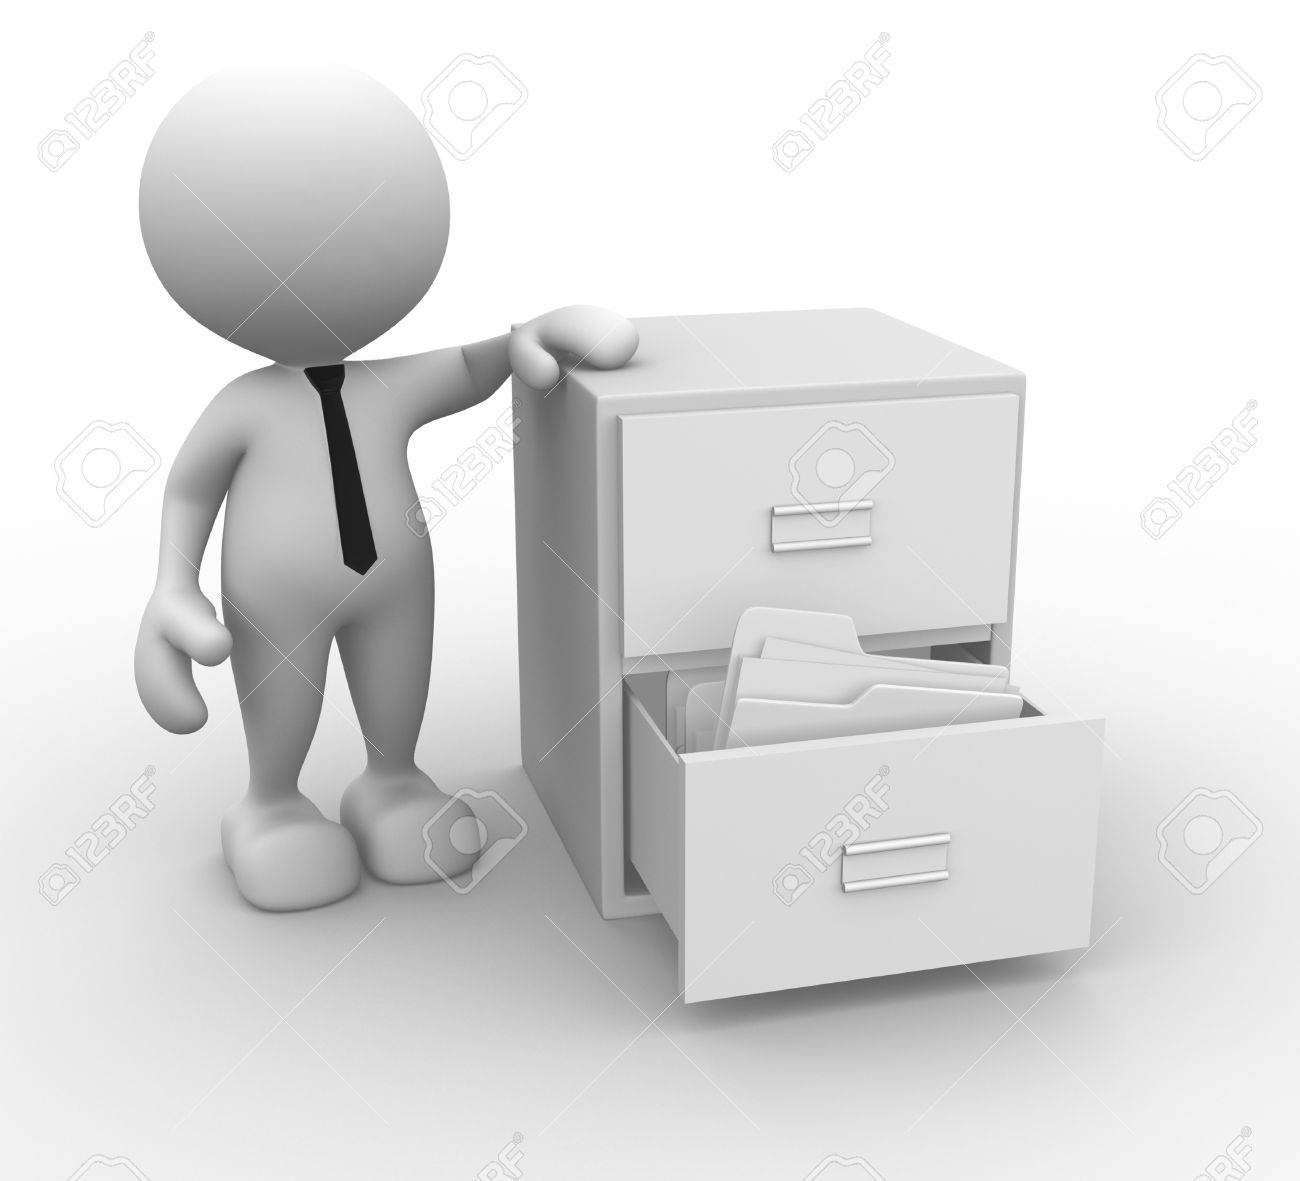 3d people - man, person and open drawer with white folders. Stock Photo - 17532527